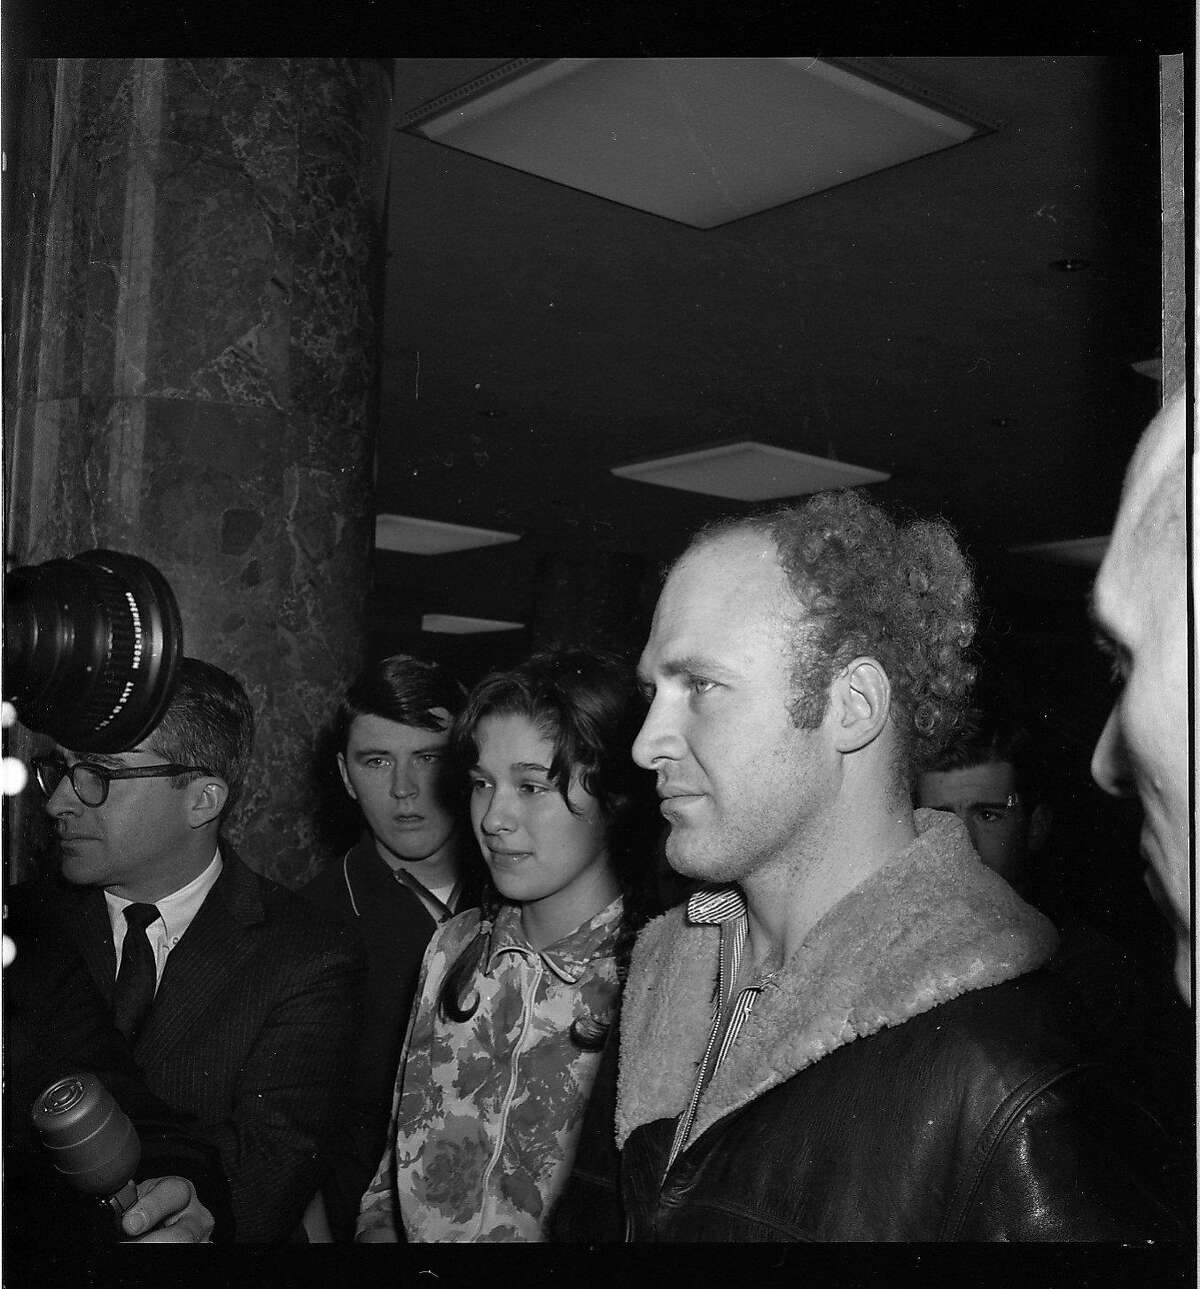 Ken Kesey and Carolyn Adams found on a roof top with marijuana Photos shot 01/19/1966